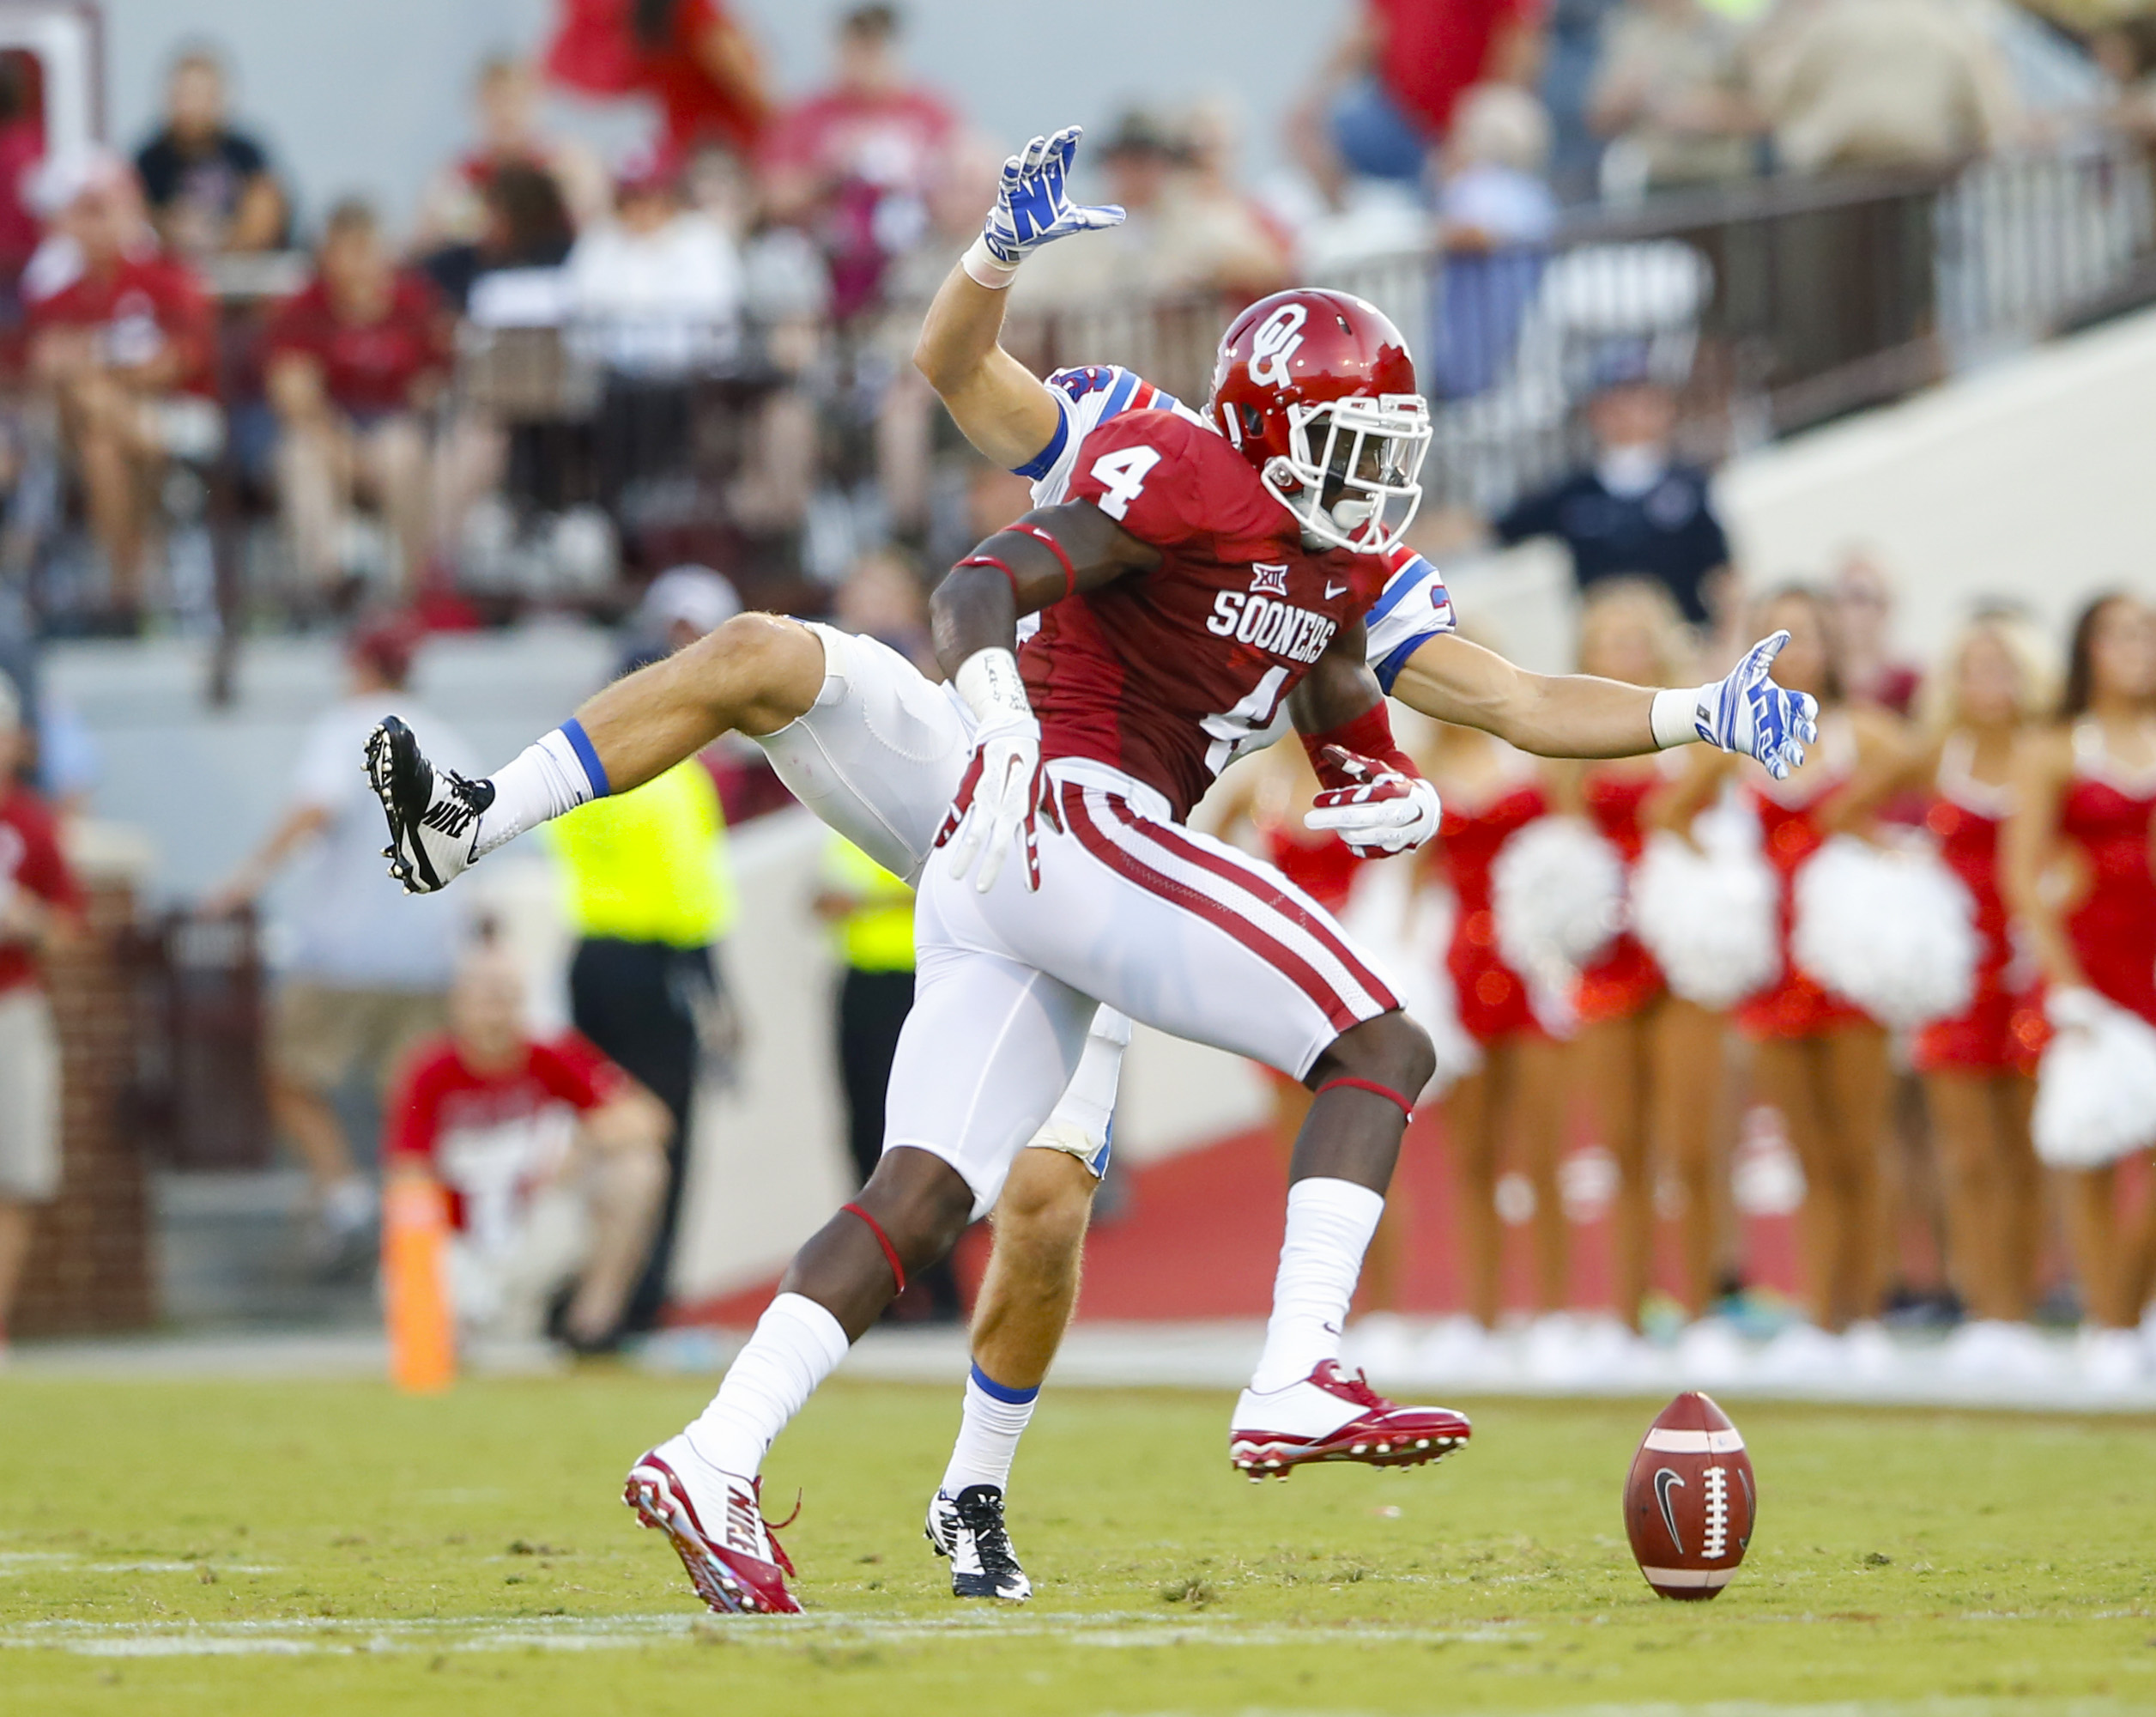 Aug 30, 2014; Norman, OK, USA; Oklahoma Sooners safety Hatari Byrd (4) knocks a pass down in front of Louisiana Tech Bulldogs running back Hunter Lee (back) during the first half at Gaylord Family - Oklahoma Memorial Stadium. (Kevin Jairaj-USA TODAY Sports)